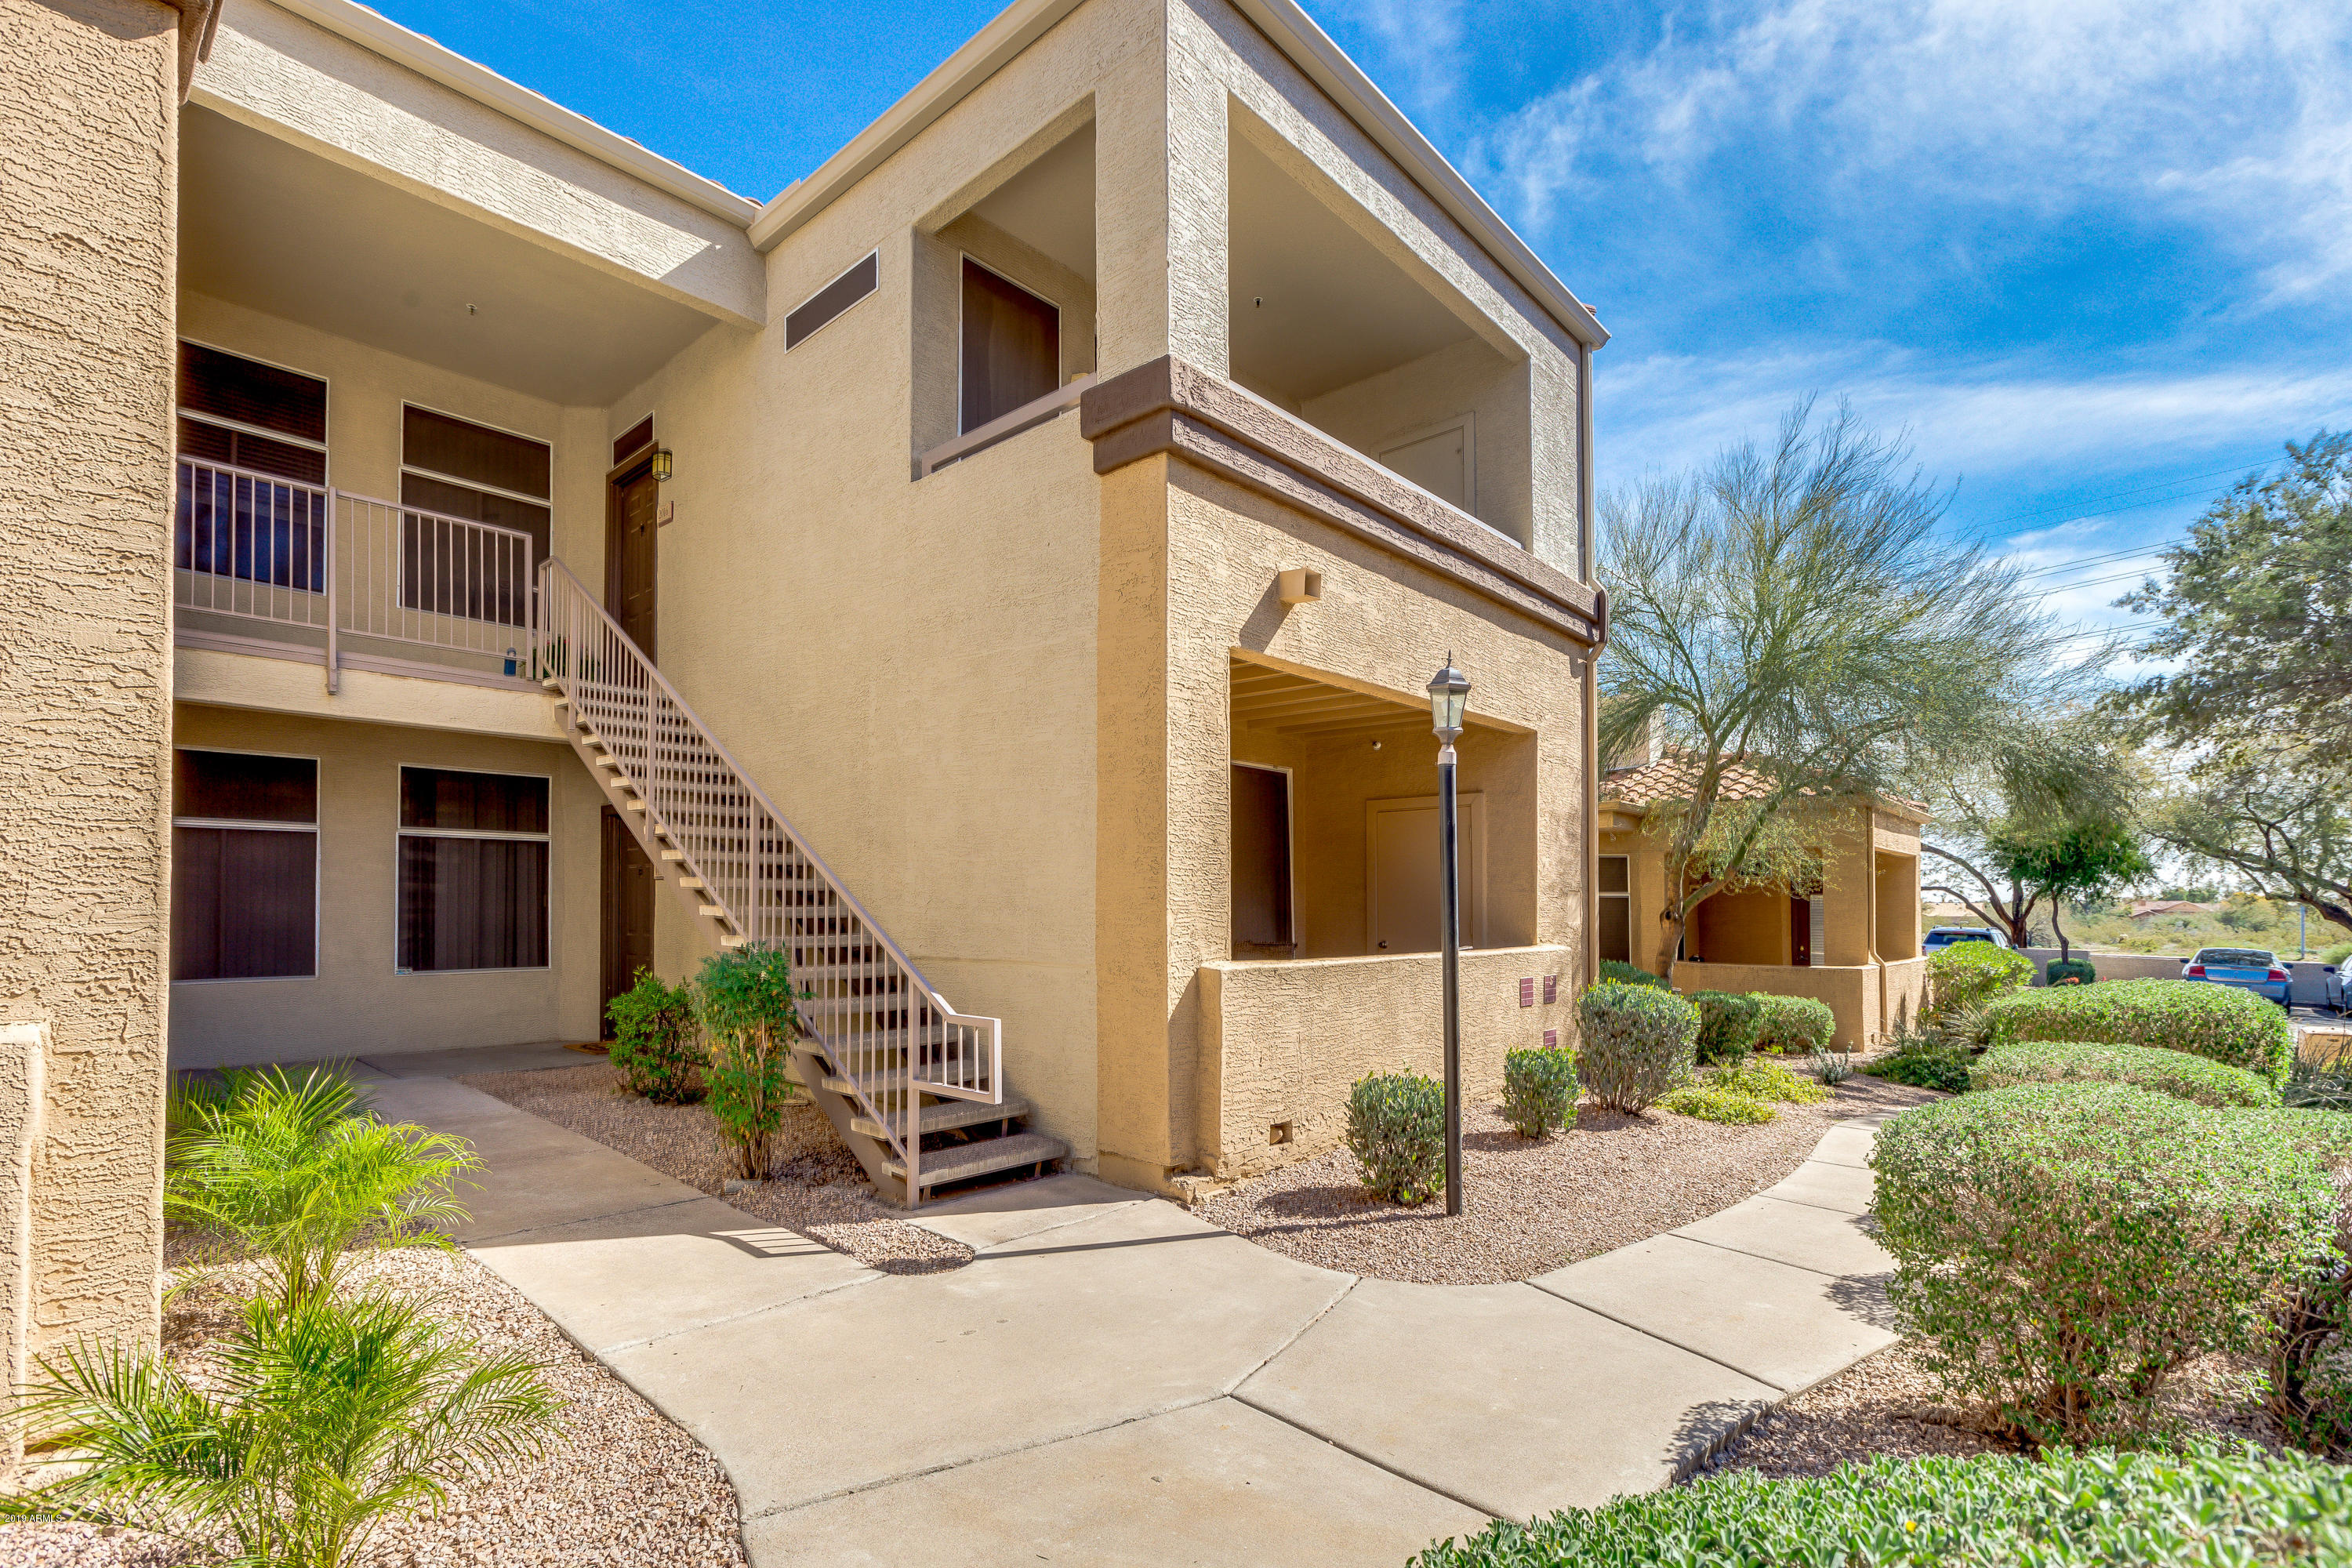 Photo of 11375 E SAHUARO Drive #2016, Scottsdale, AZ 85259